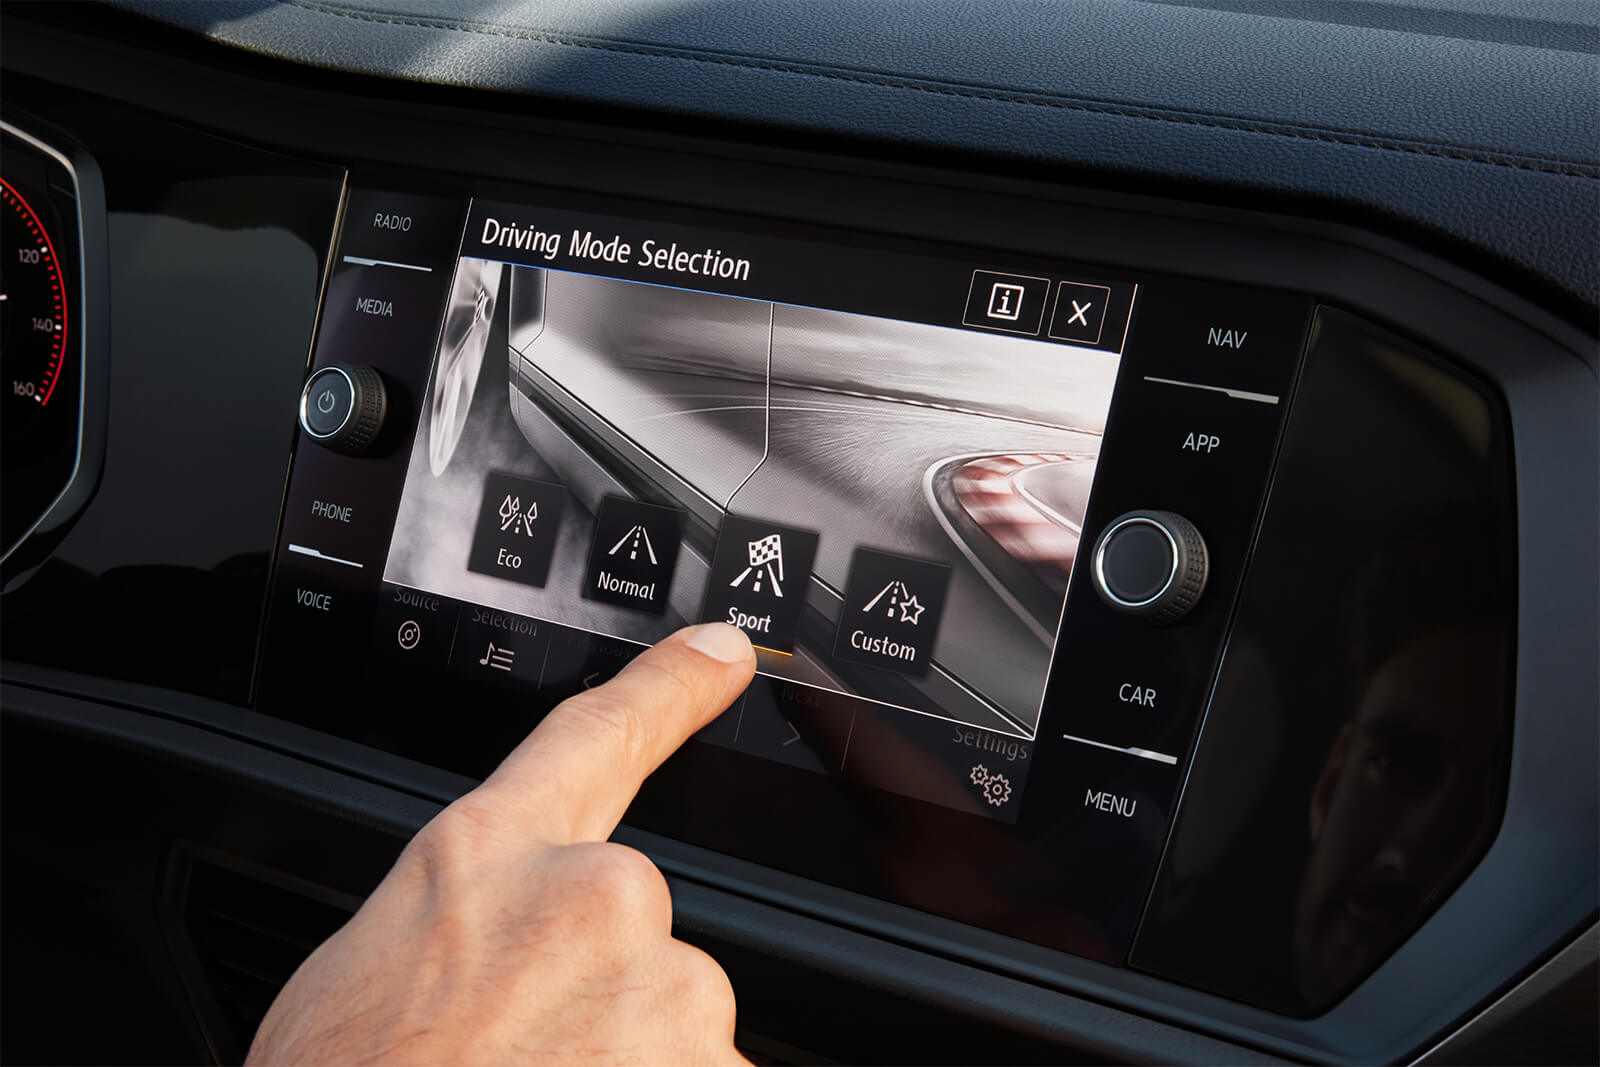 Touchscreen Display in the 2019 Jetta